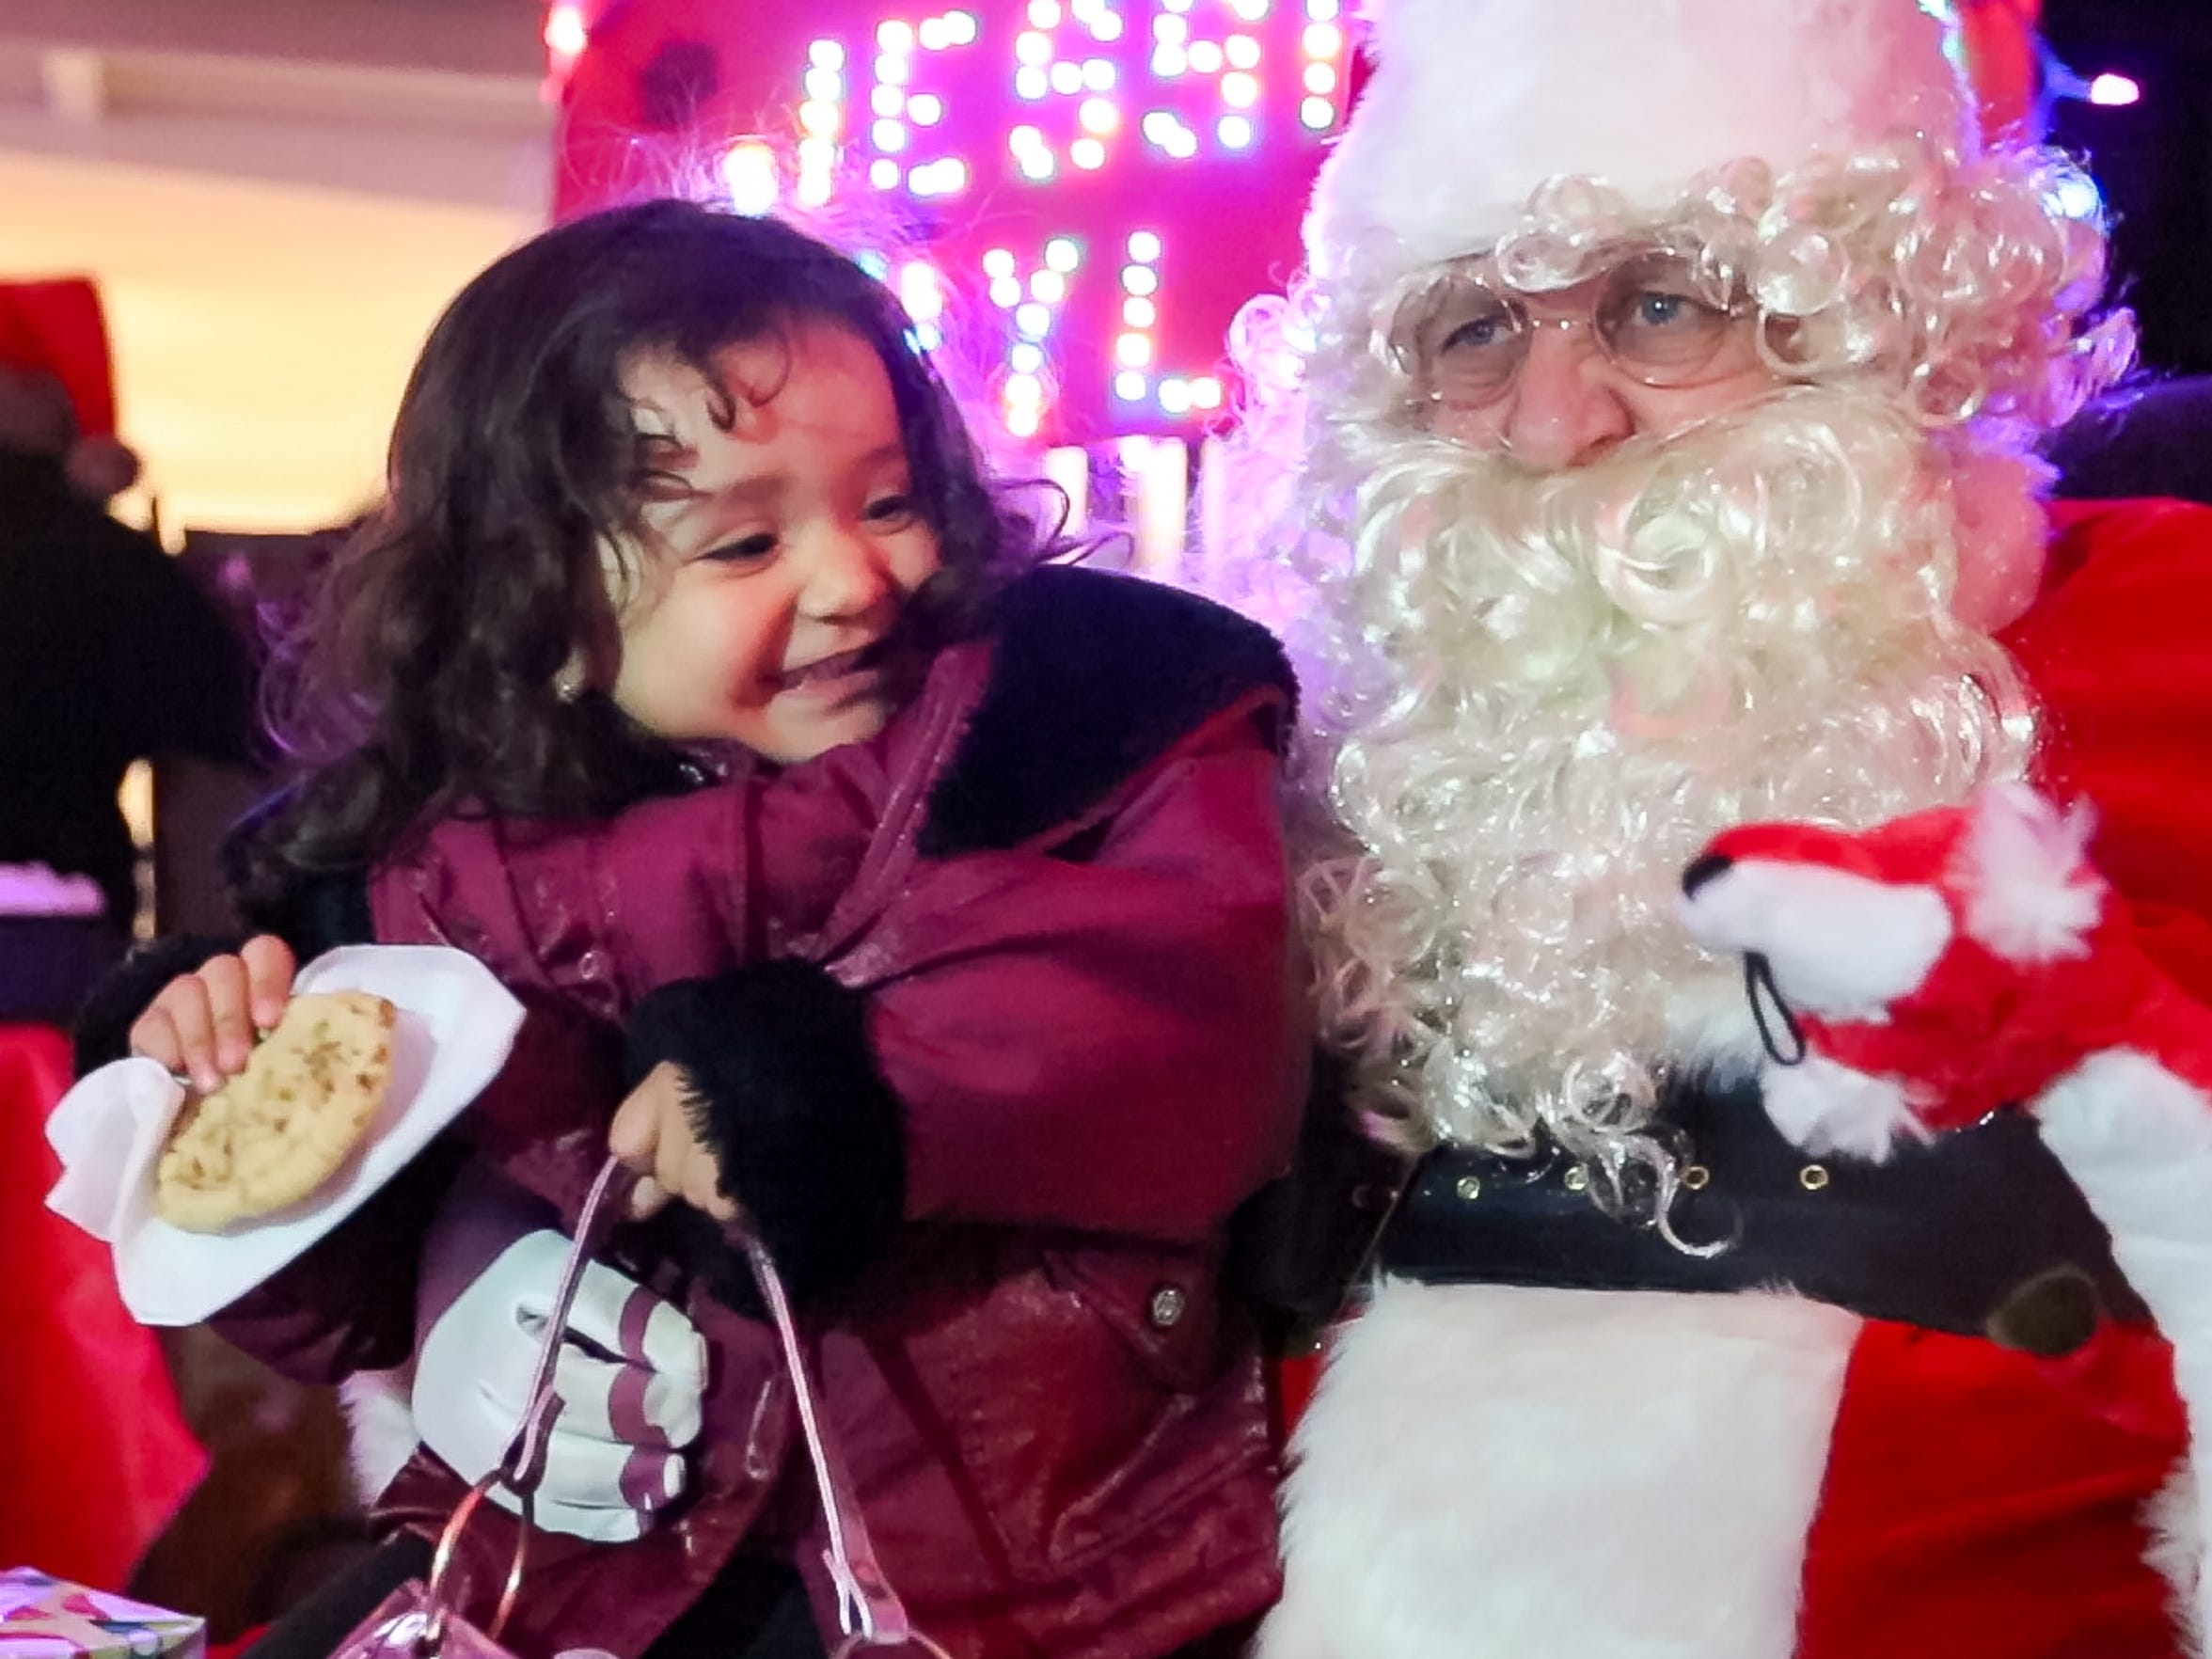 Mama Jessie\' and family spread cheer through annual Christmas display